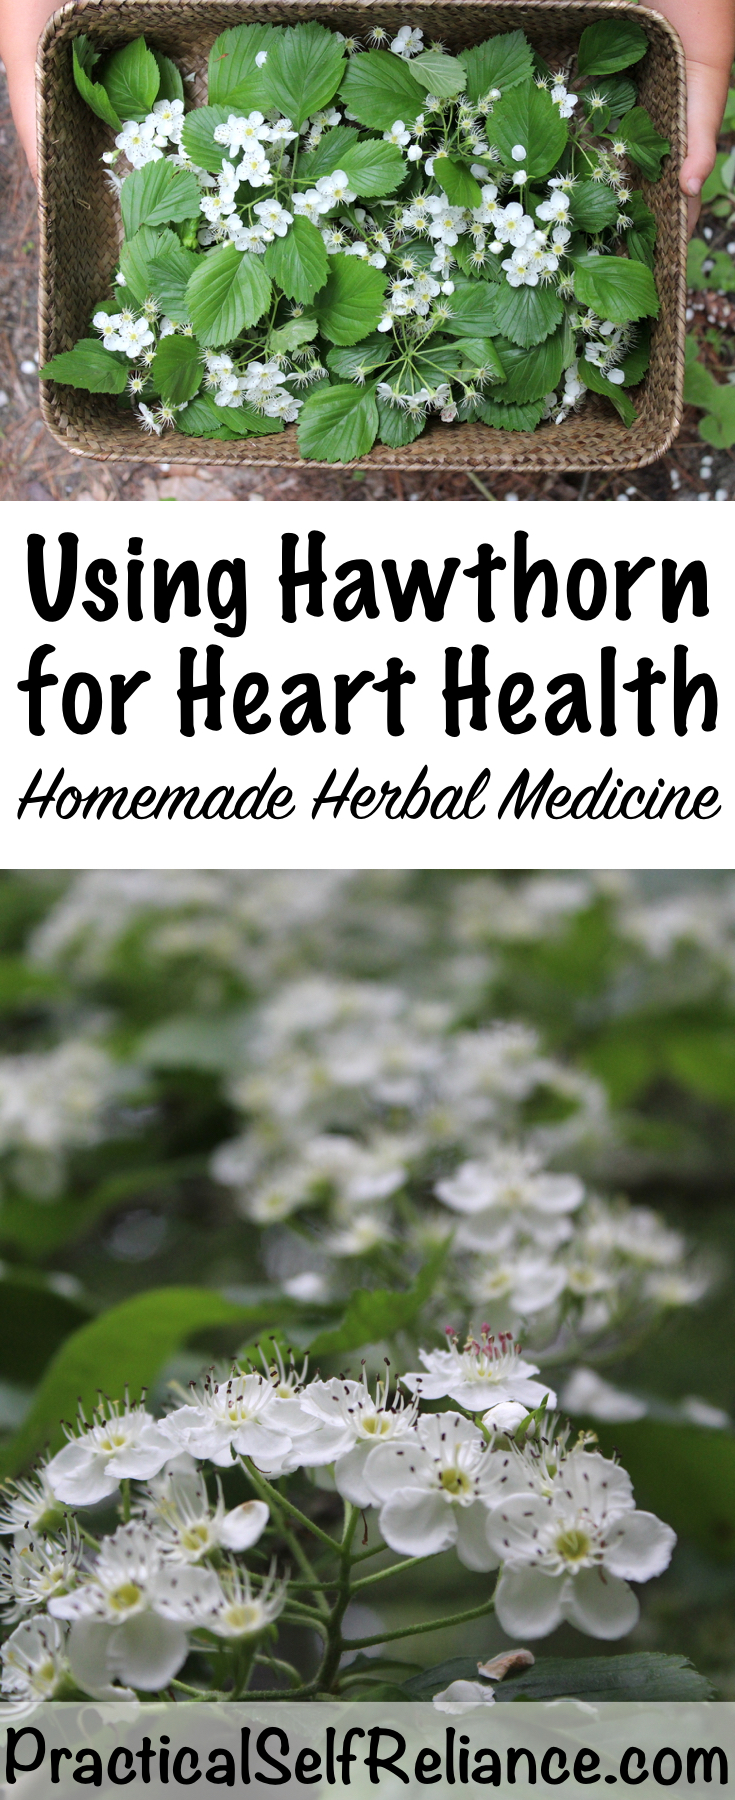 Hawthorn Herbal Medicine #hawthorn #herbalism #herbs #naturalremedy #hearthealth